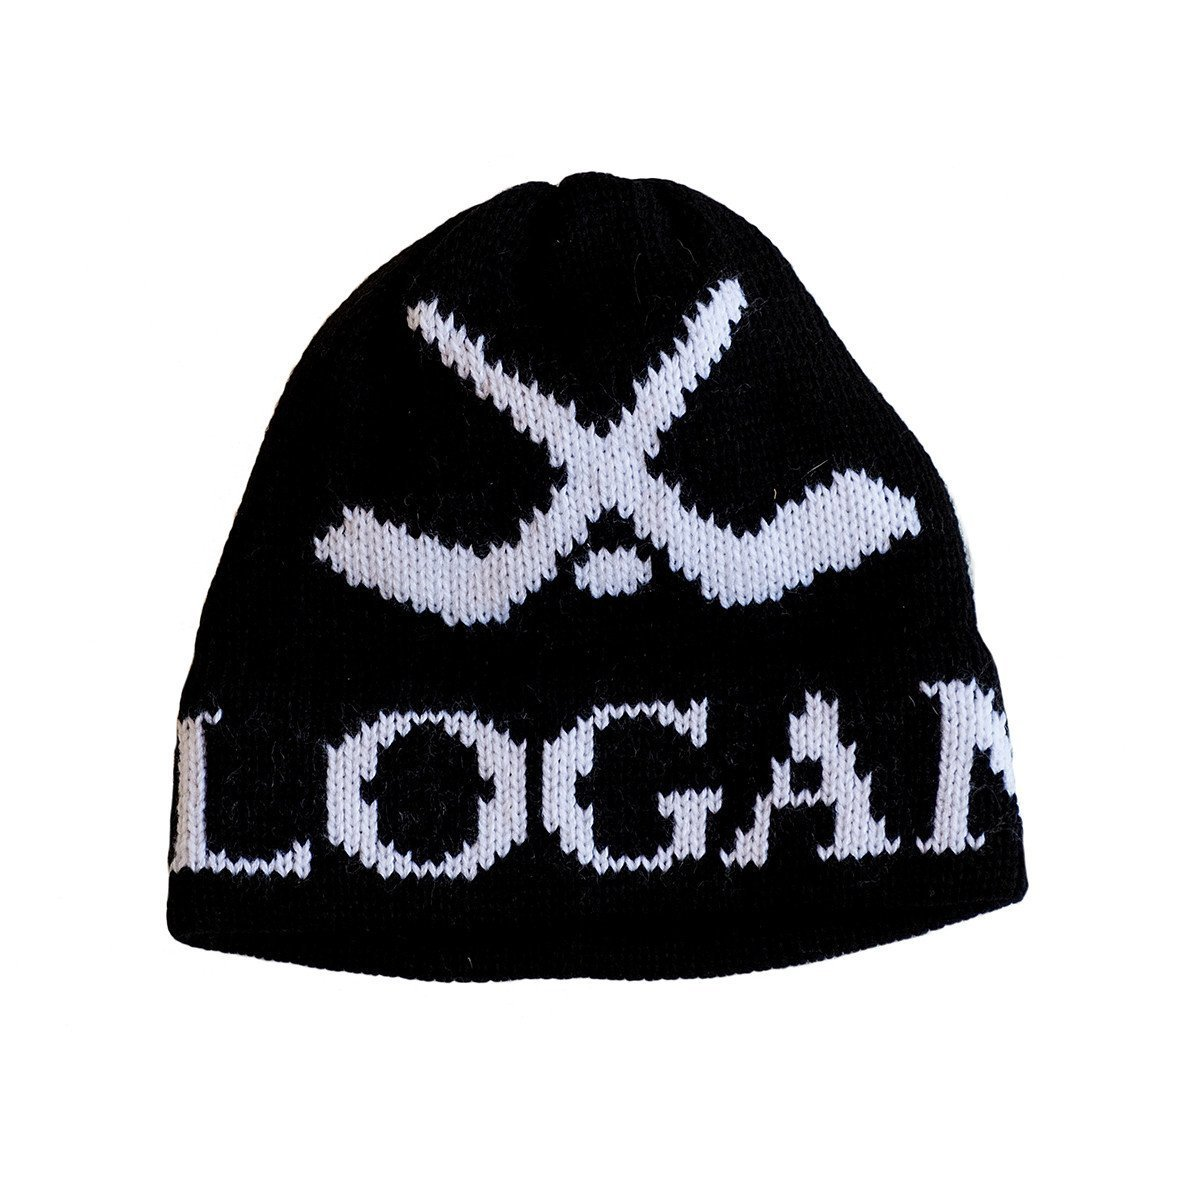 Hockey Personalized Knit Hat-Hats-Jack and Jill Boutique